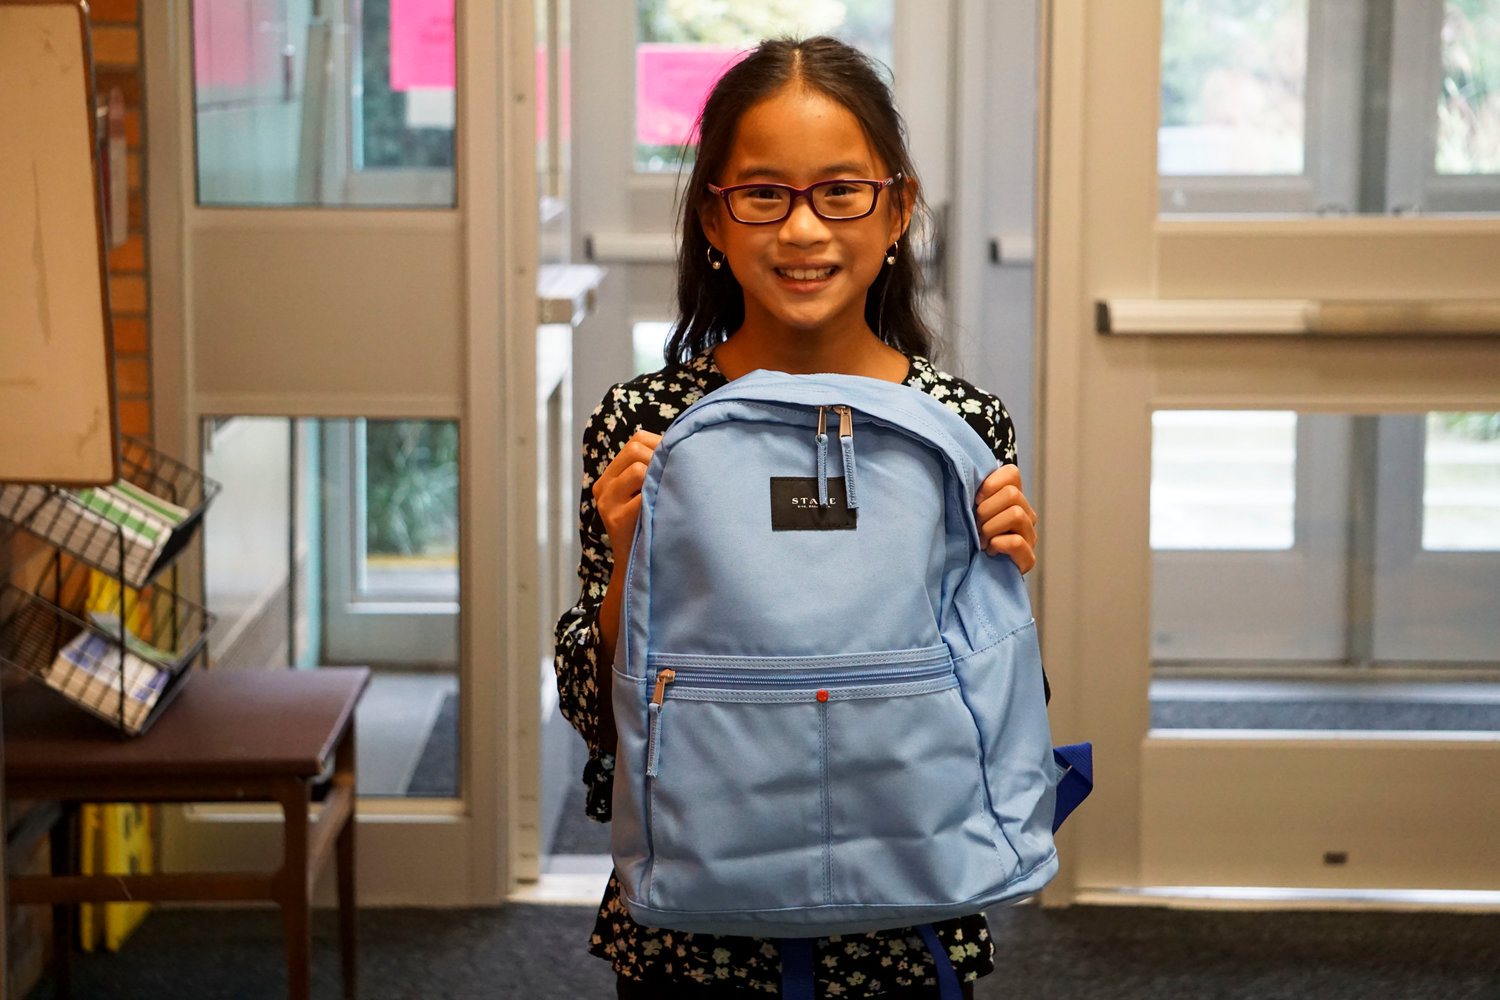 Ten-year-old Jessica Tramontano, said she was excited about her new book bag.